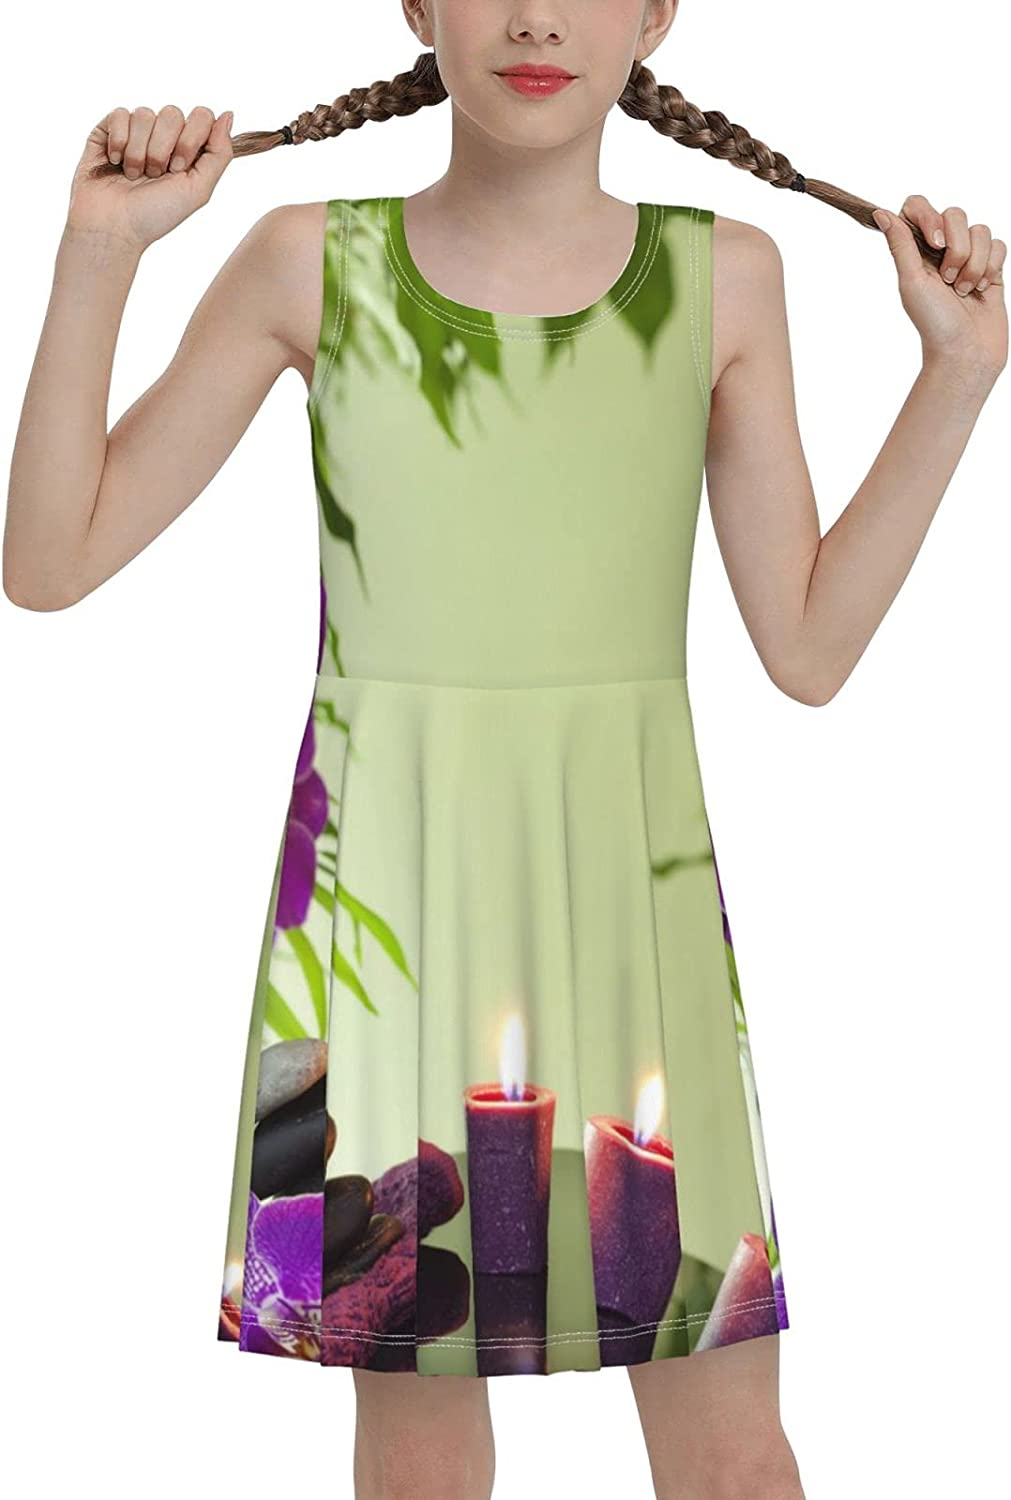 SDGhgHJG Candles and Orchids Sleeveless Dress for Girls Casual Printed Lightweight Skirt